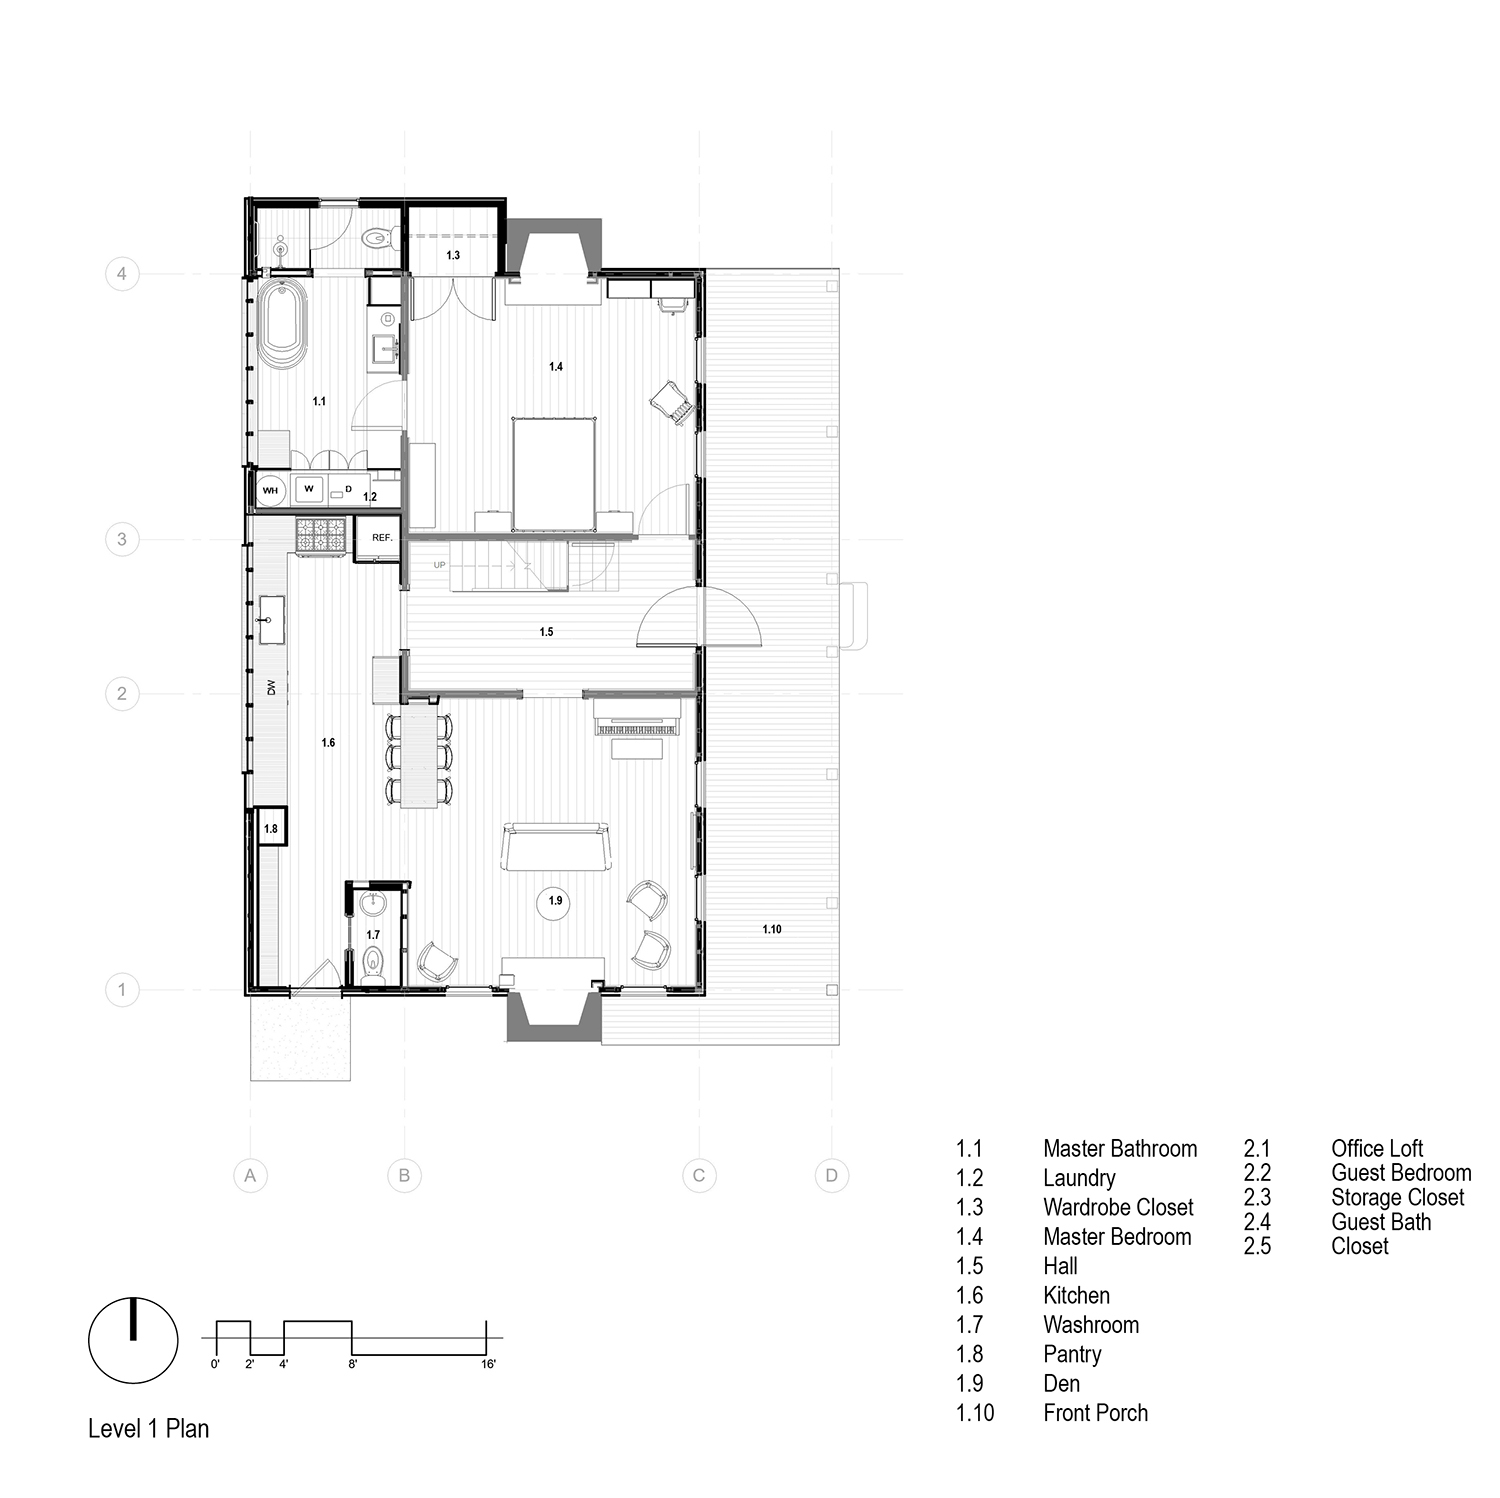 Kitchen Plan, Level 1 of Farmhouse renovation  mcdowellespinosa architects